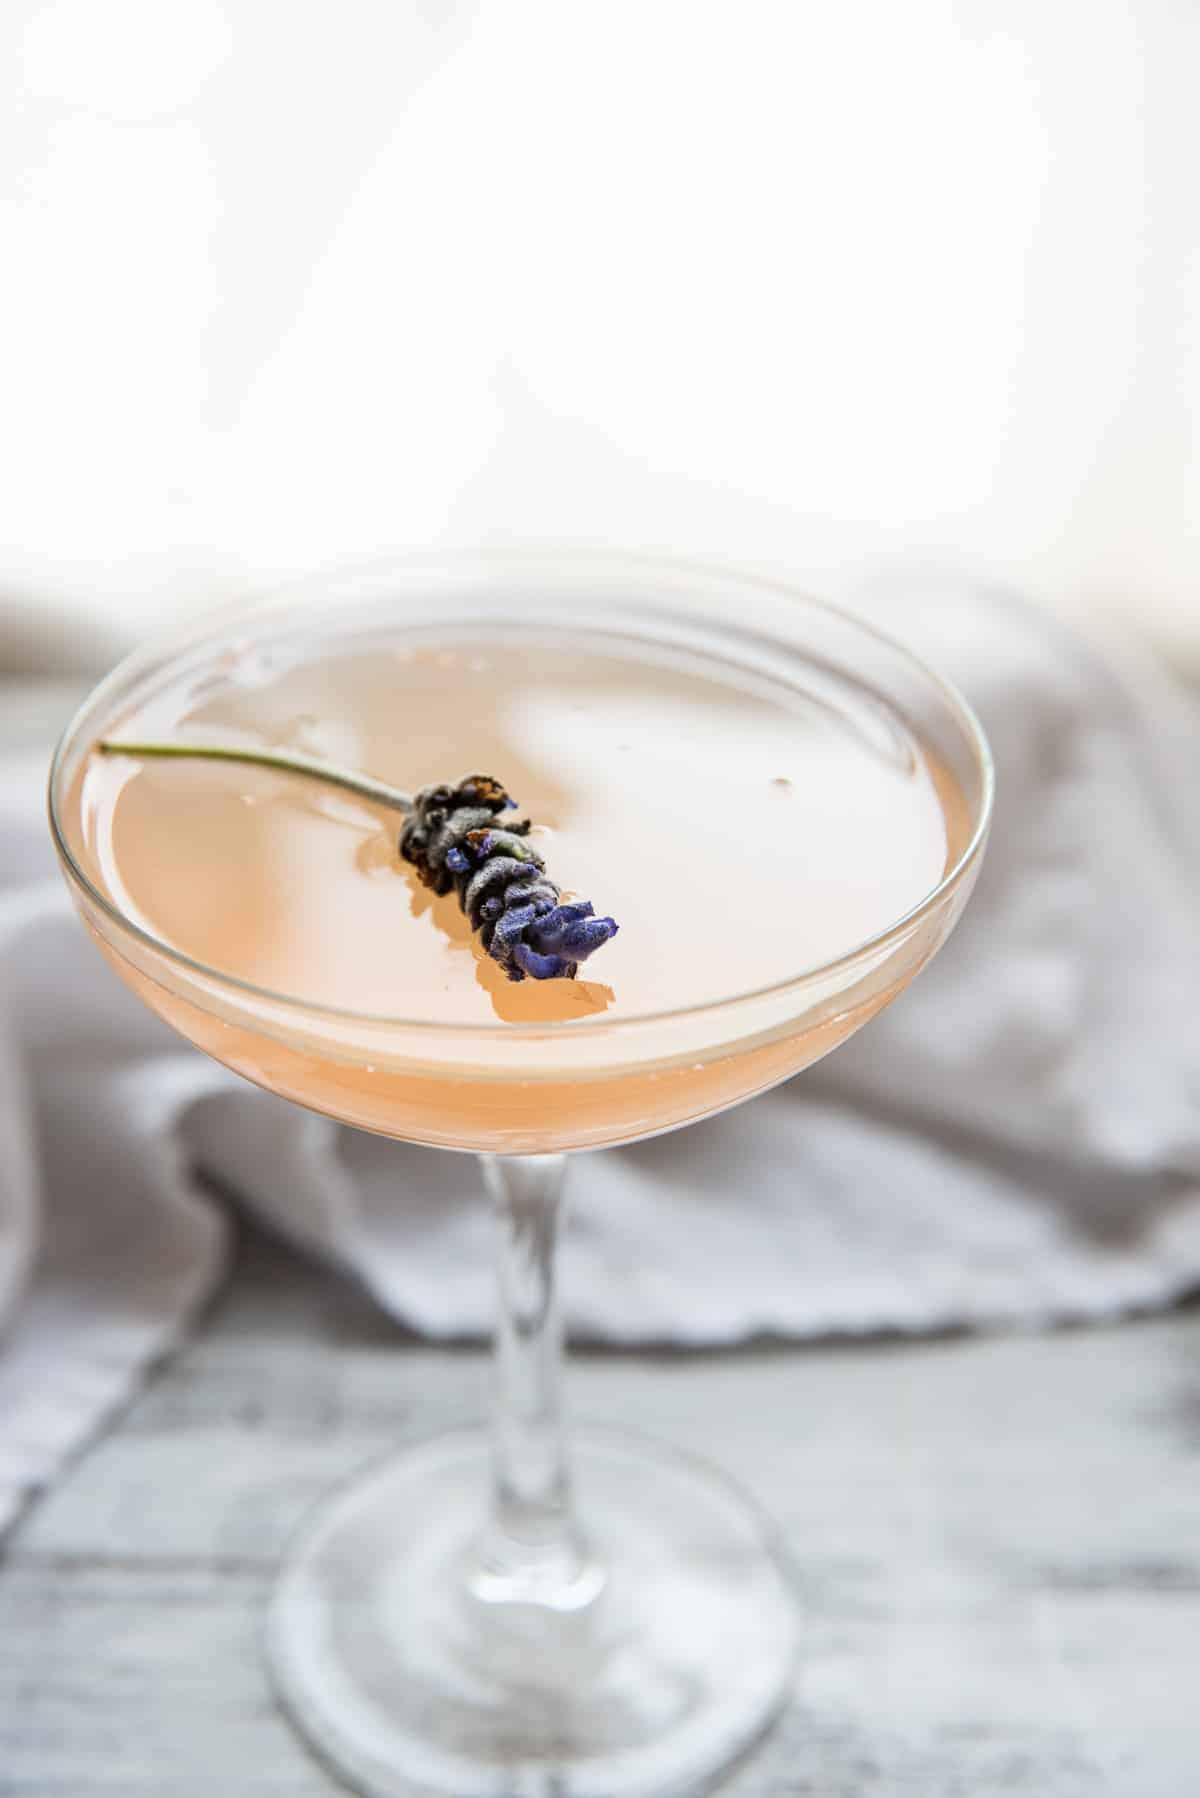 close up of a lavender flower cocktail garnish